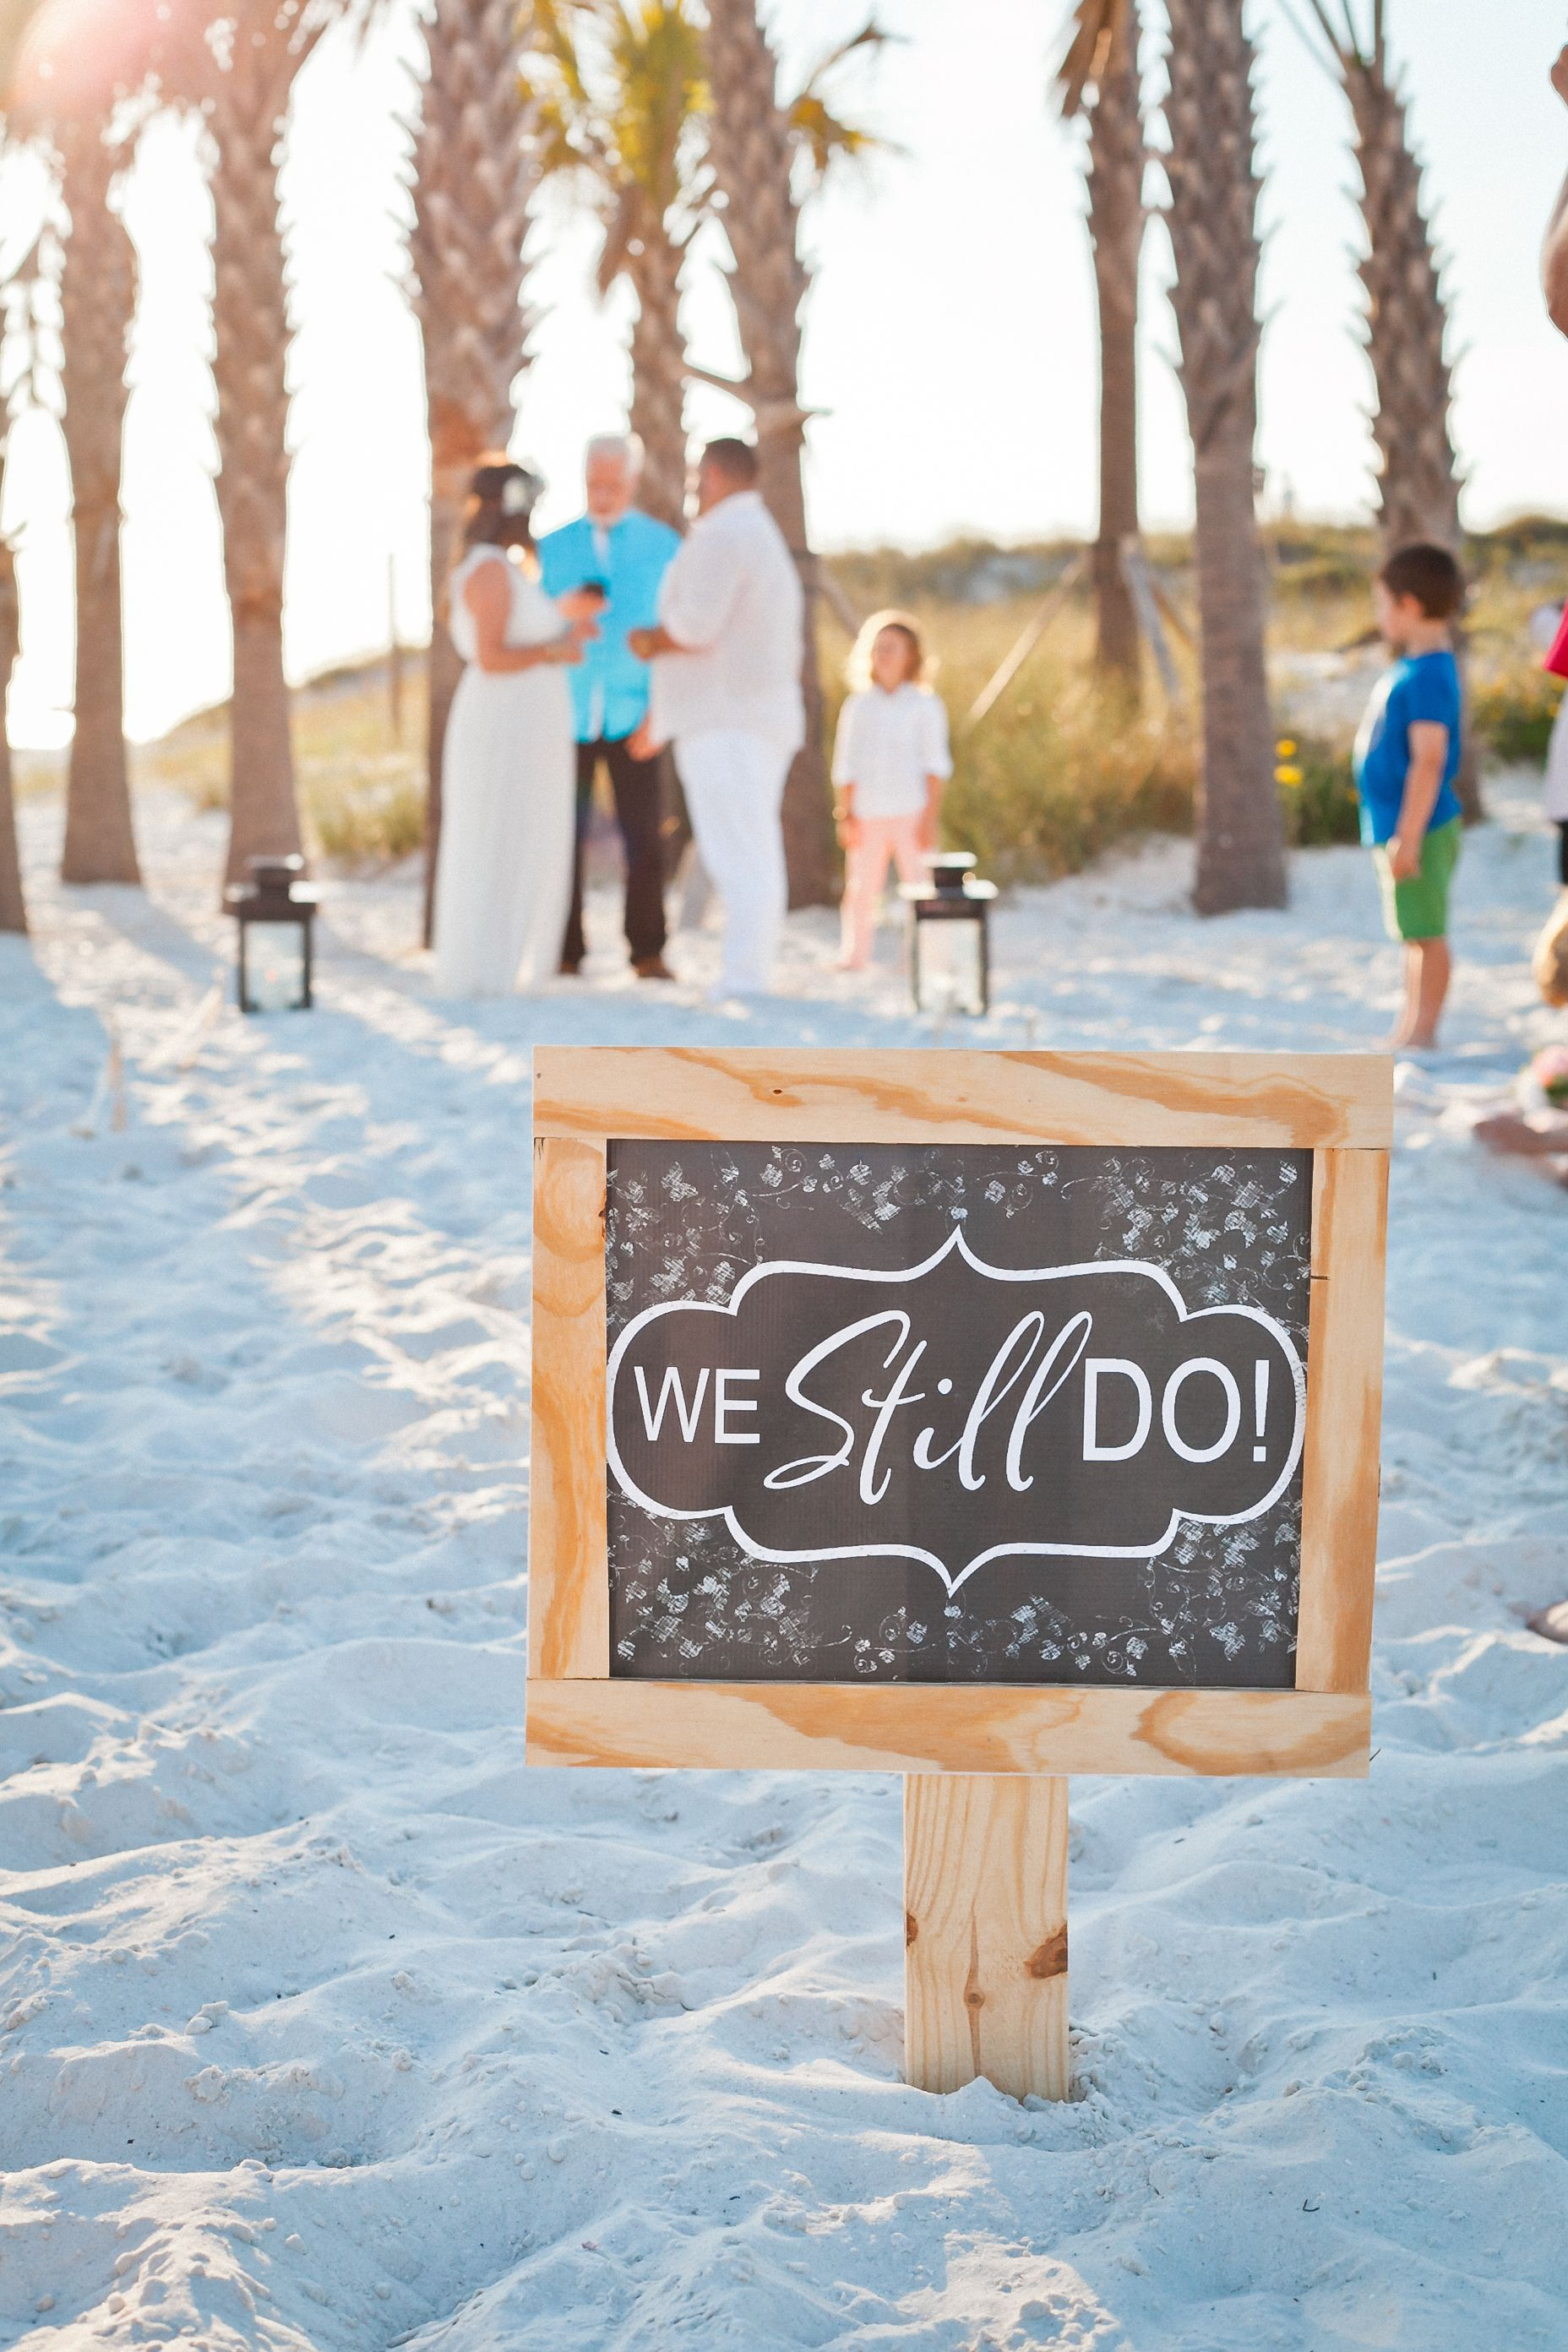 15 Years Of Marriage Holidays Parties Fresh Mommy Blog In 2020 Vow Renewal Beach Wedding Vow Renewal Ceremony Renewal Wedding